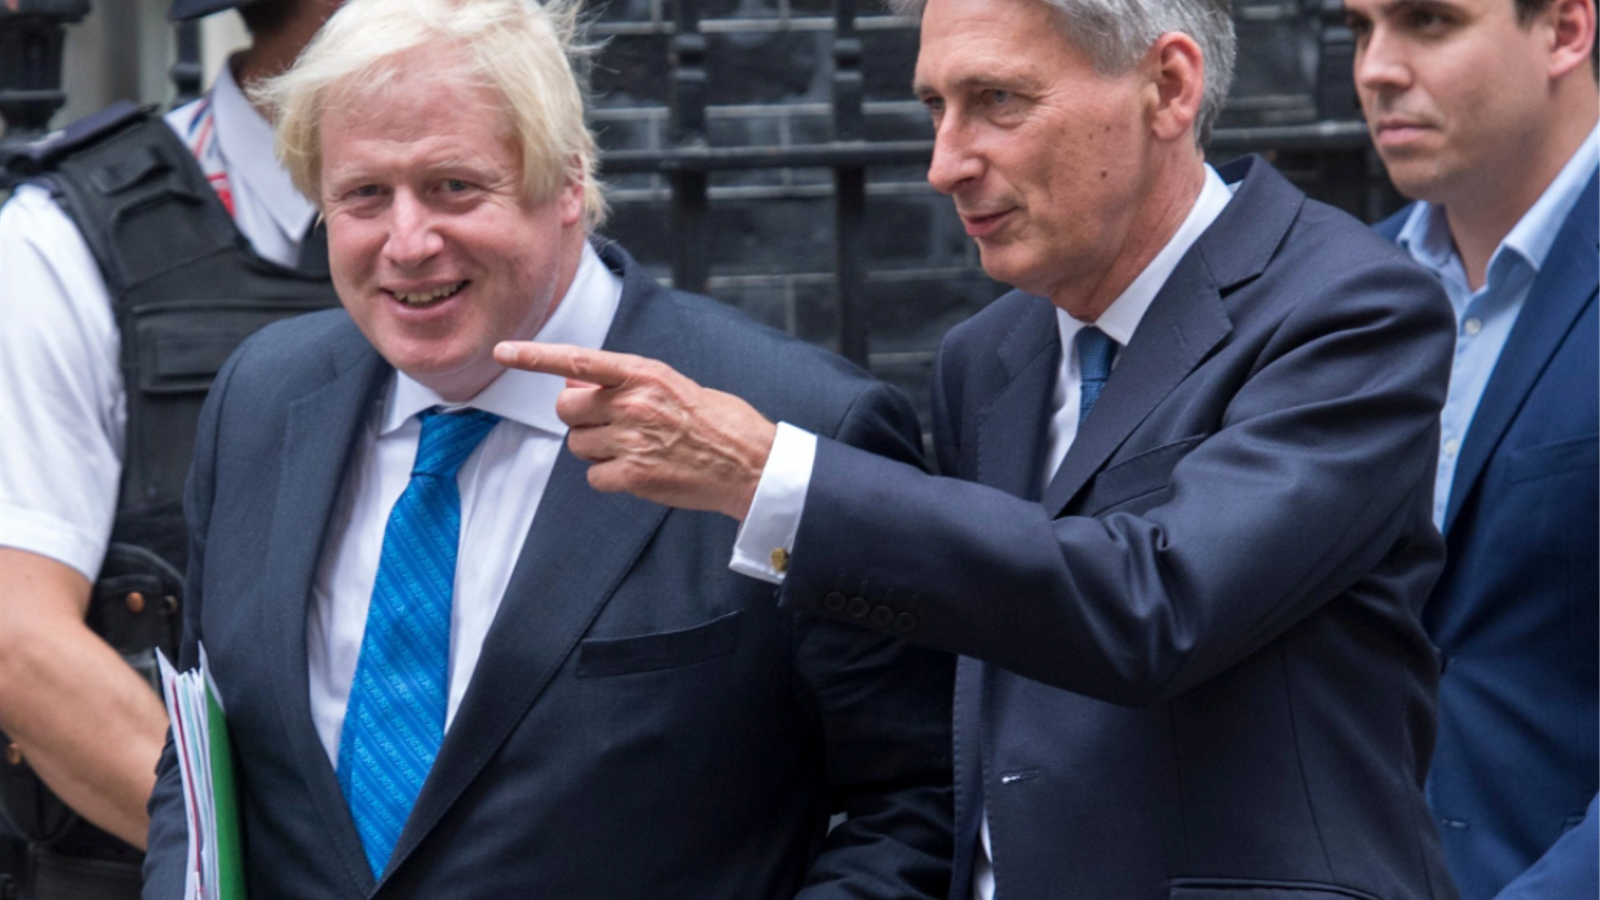 Boris Johnson i Philip Hammond, dos enemics dins del govern britànic per la seva visió del Brexit / REUTERS